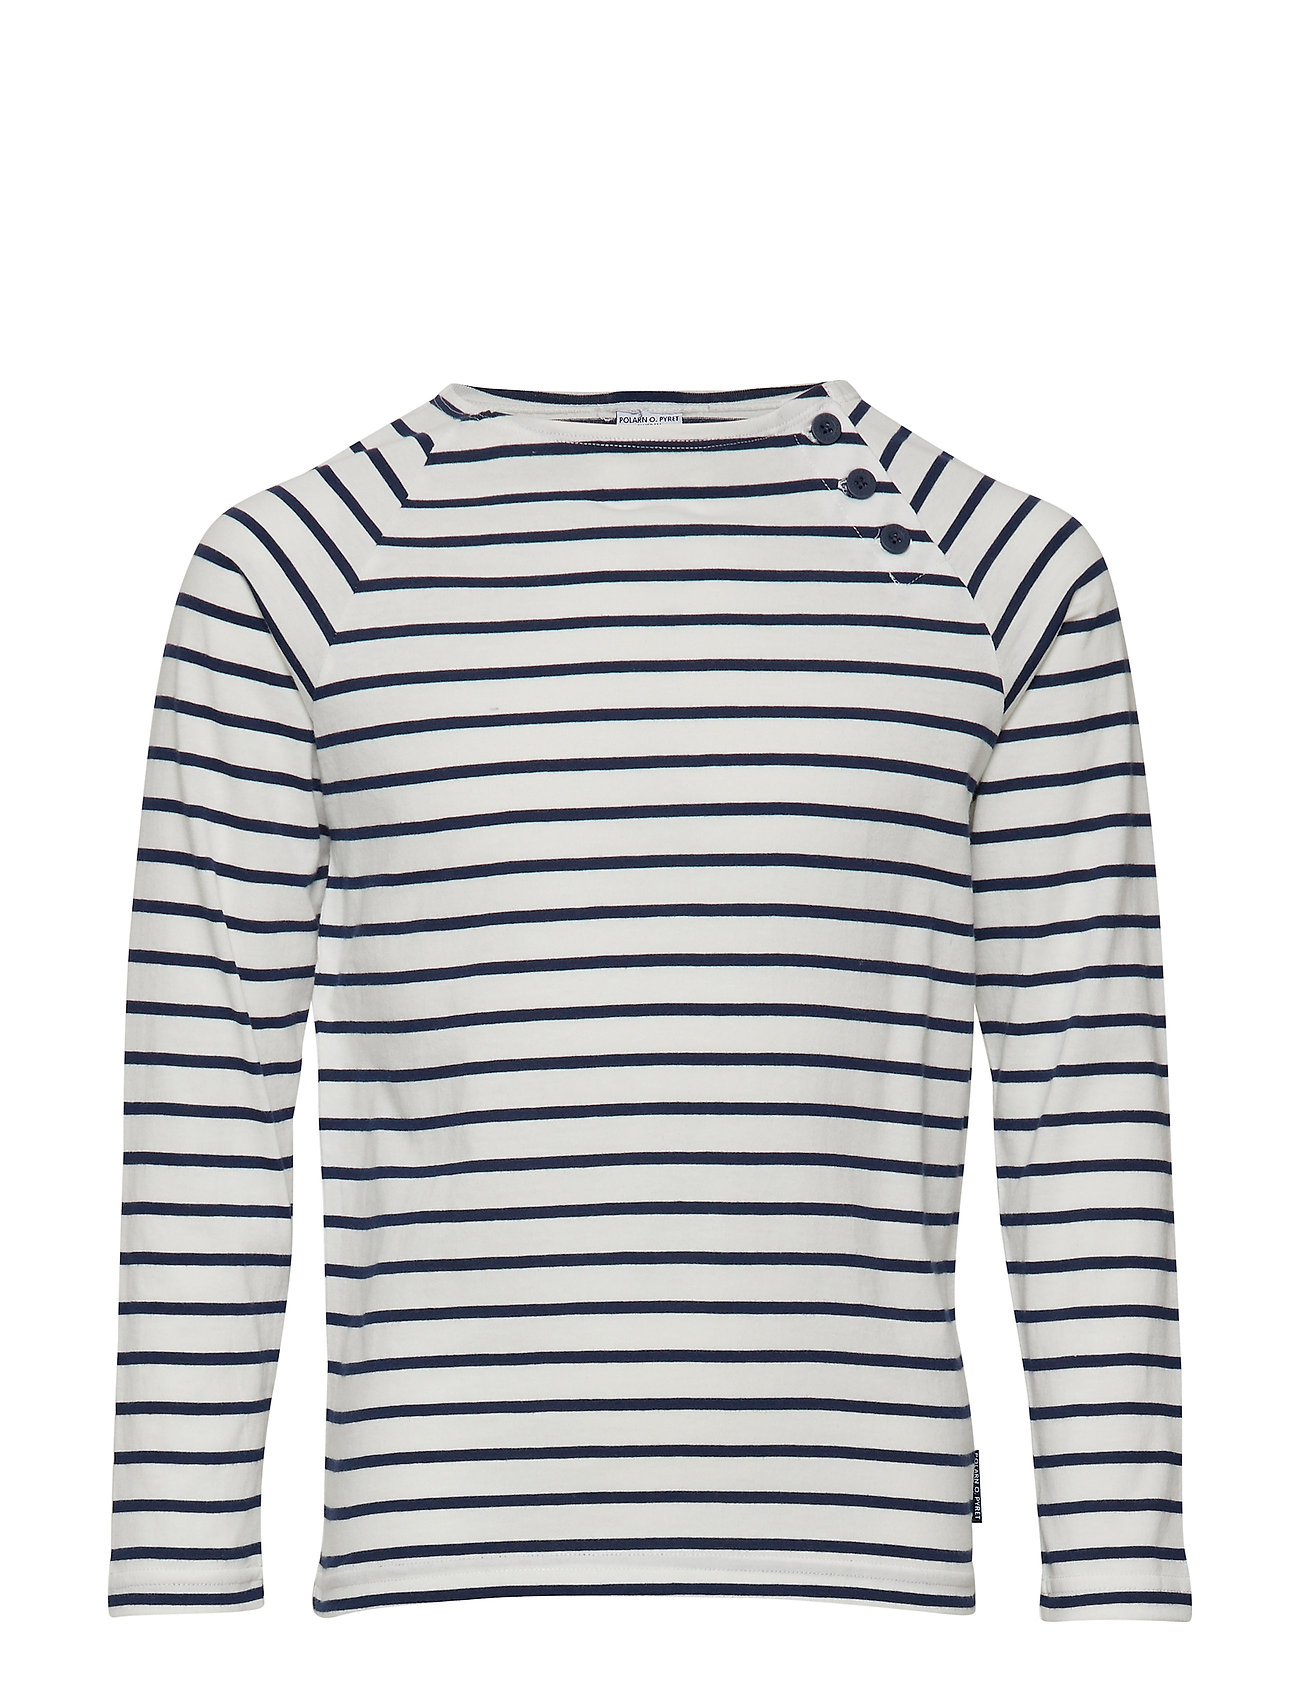 Polarn O. Pyret Top l/s striped School